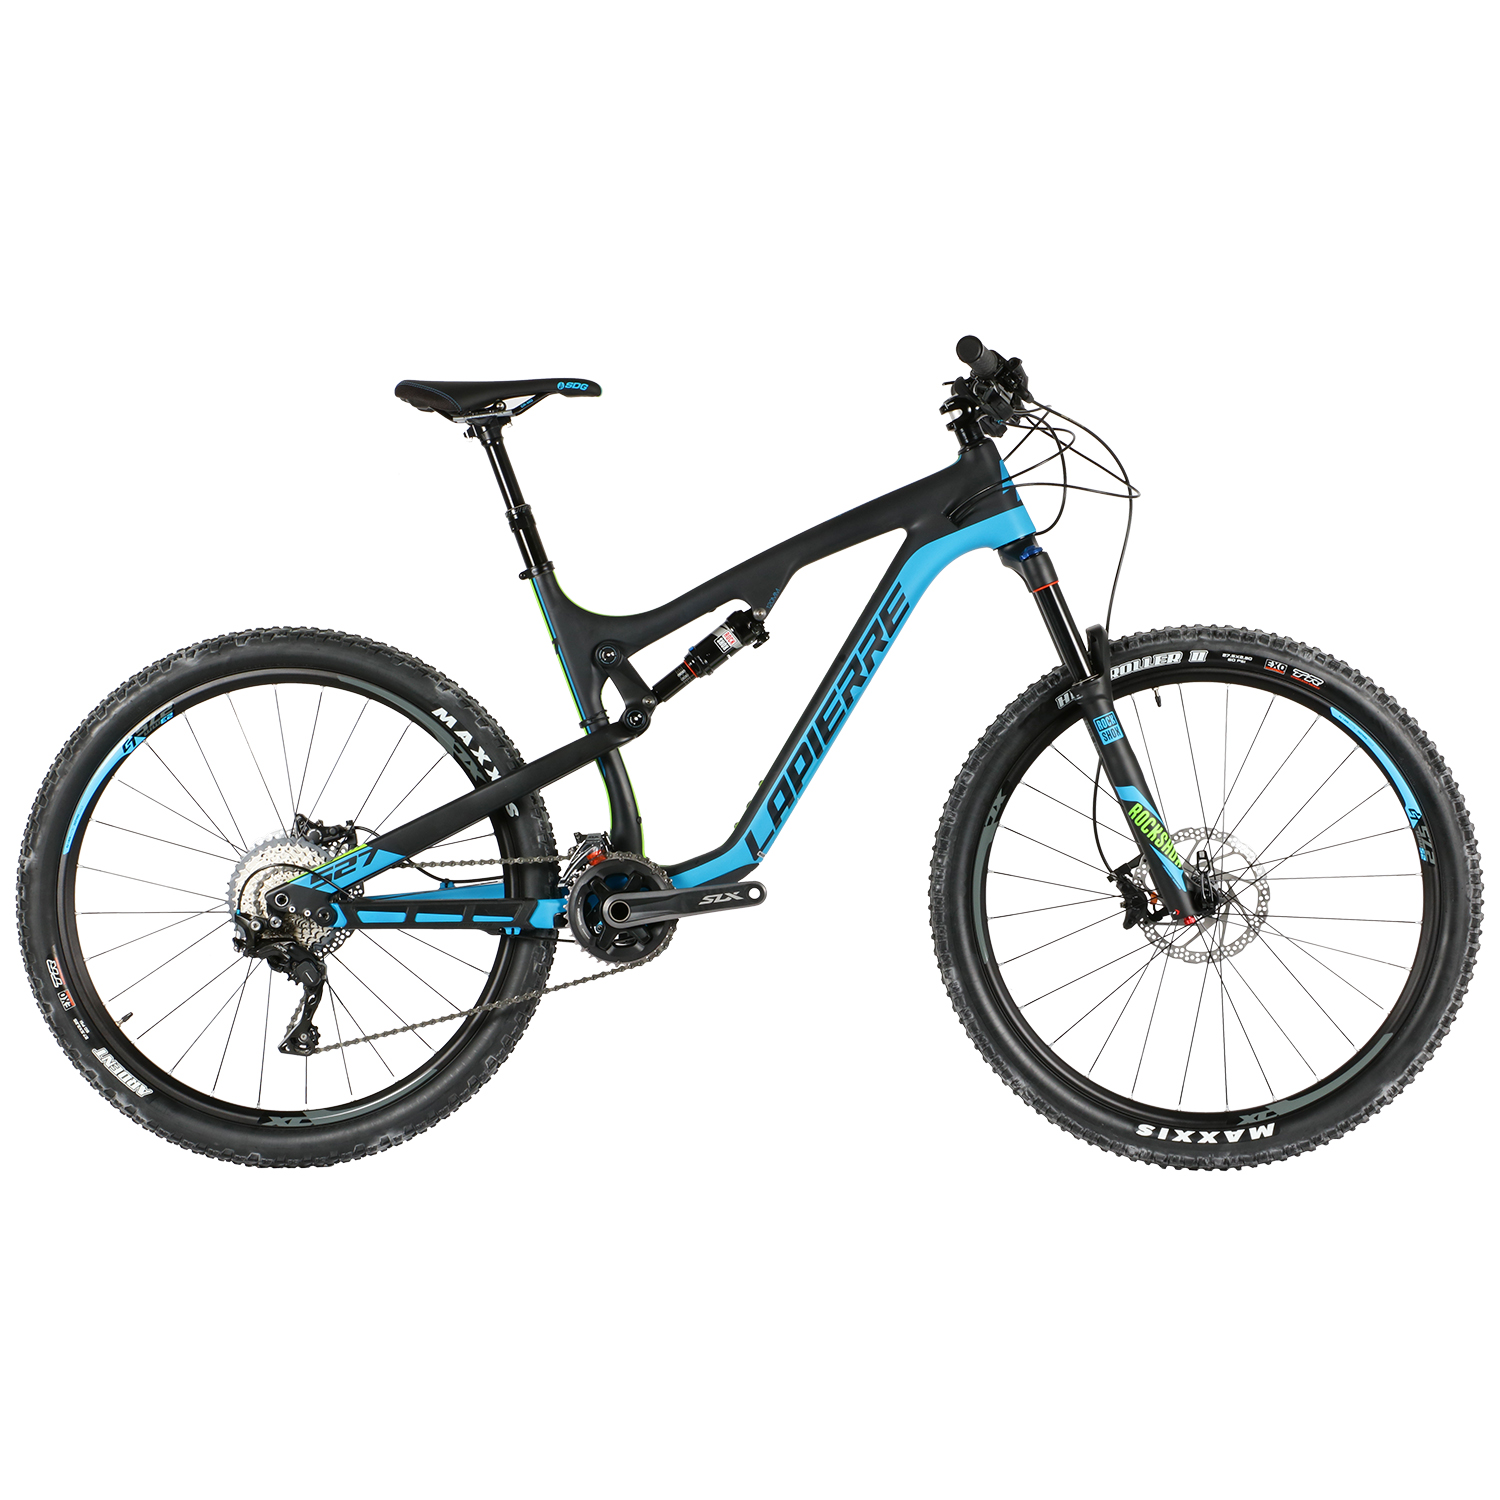 Lapierre Zesty XM 527 Mountain Bike - 2017